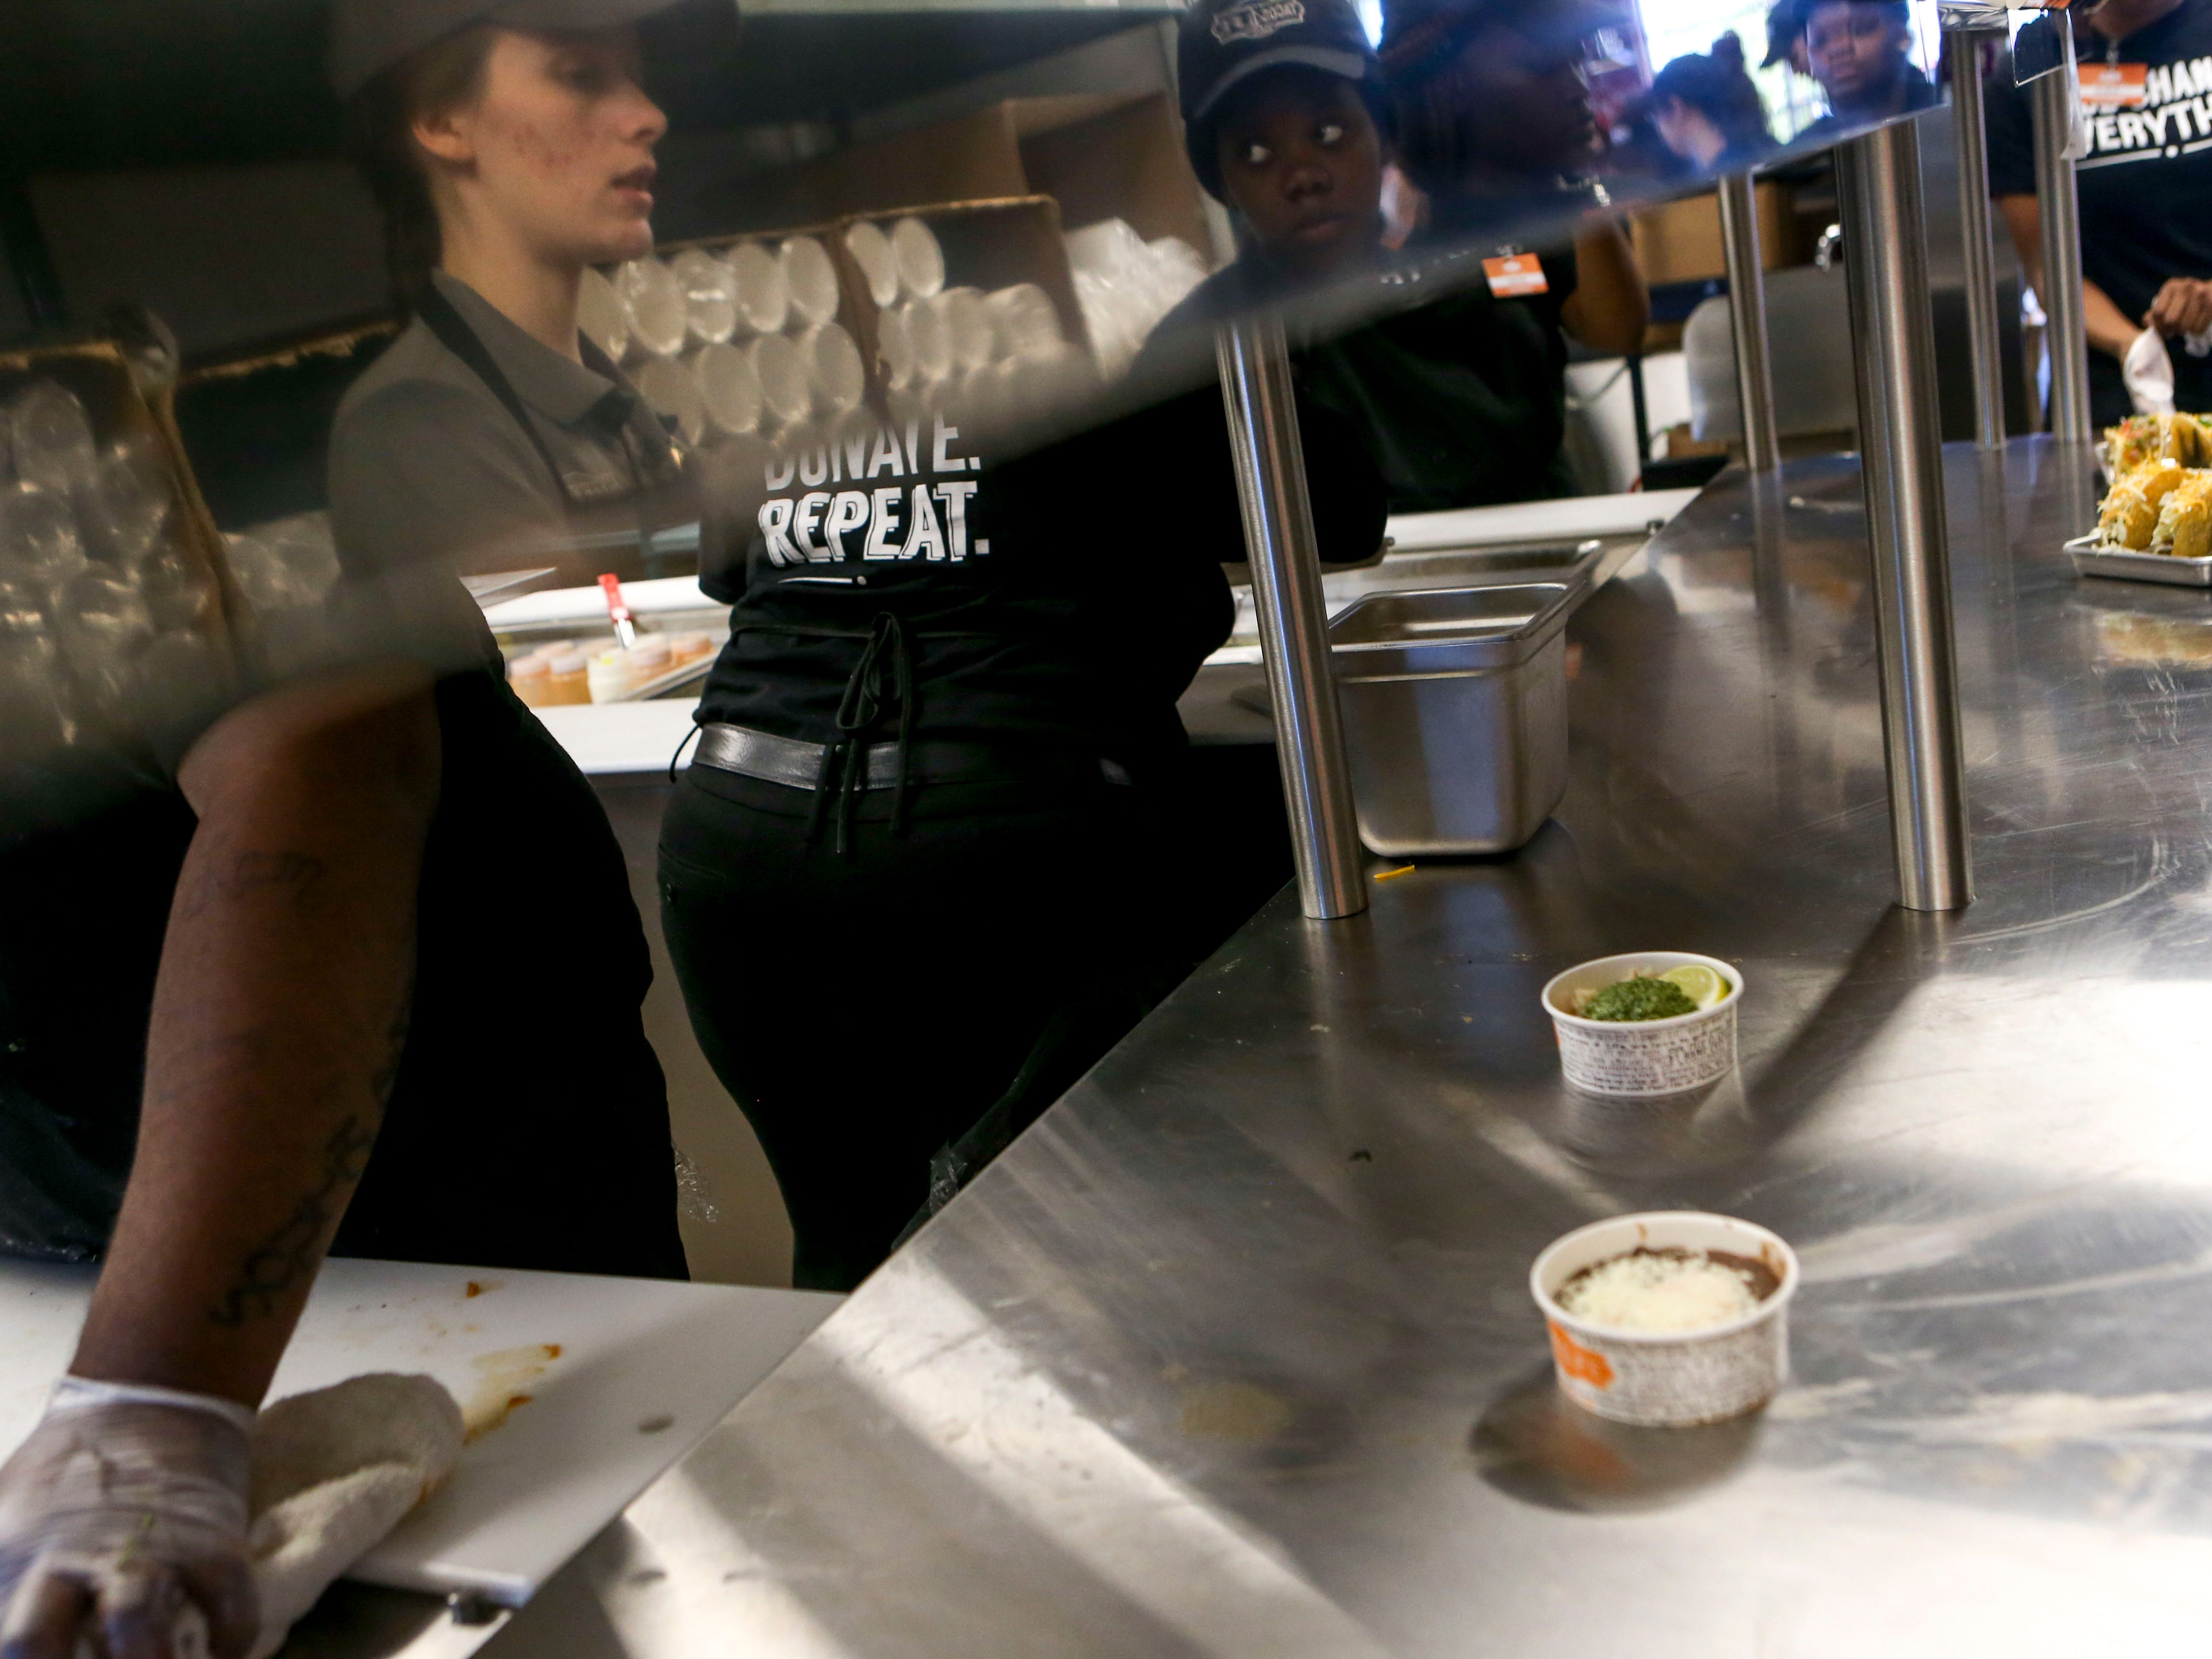 Employees wait for orders to arrive in the window during the soft opening at Tacos 4 Life, a new restaurant in Jackson, Tenn., on Monday, Oct. 29, 2018.